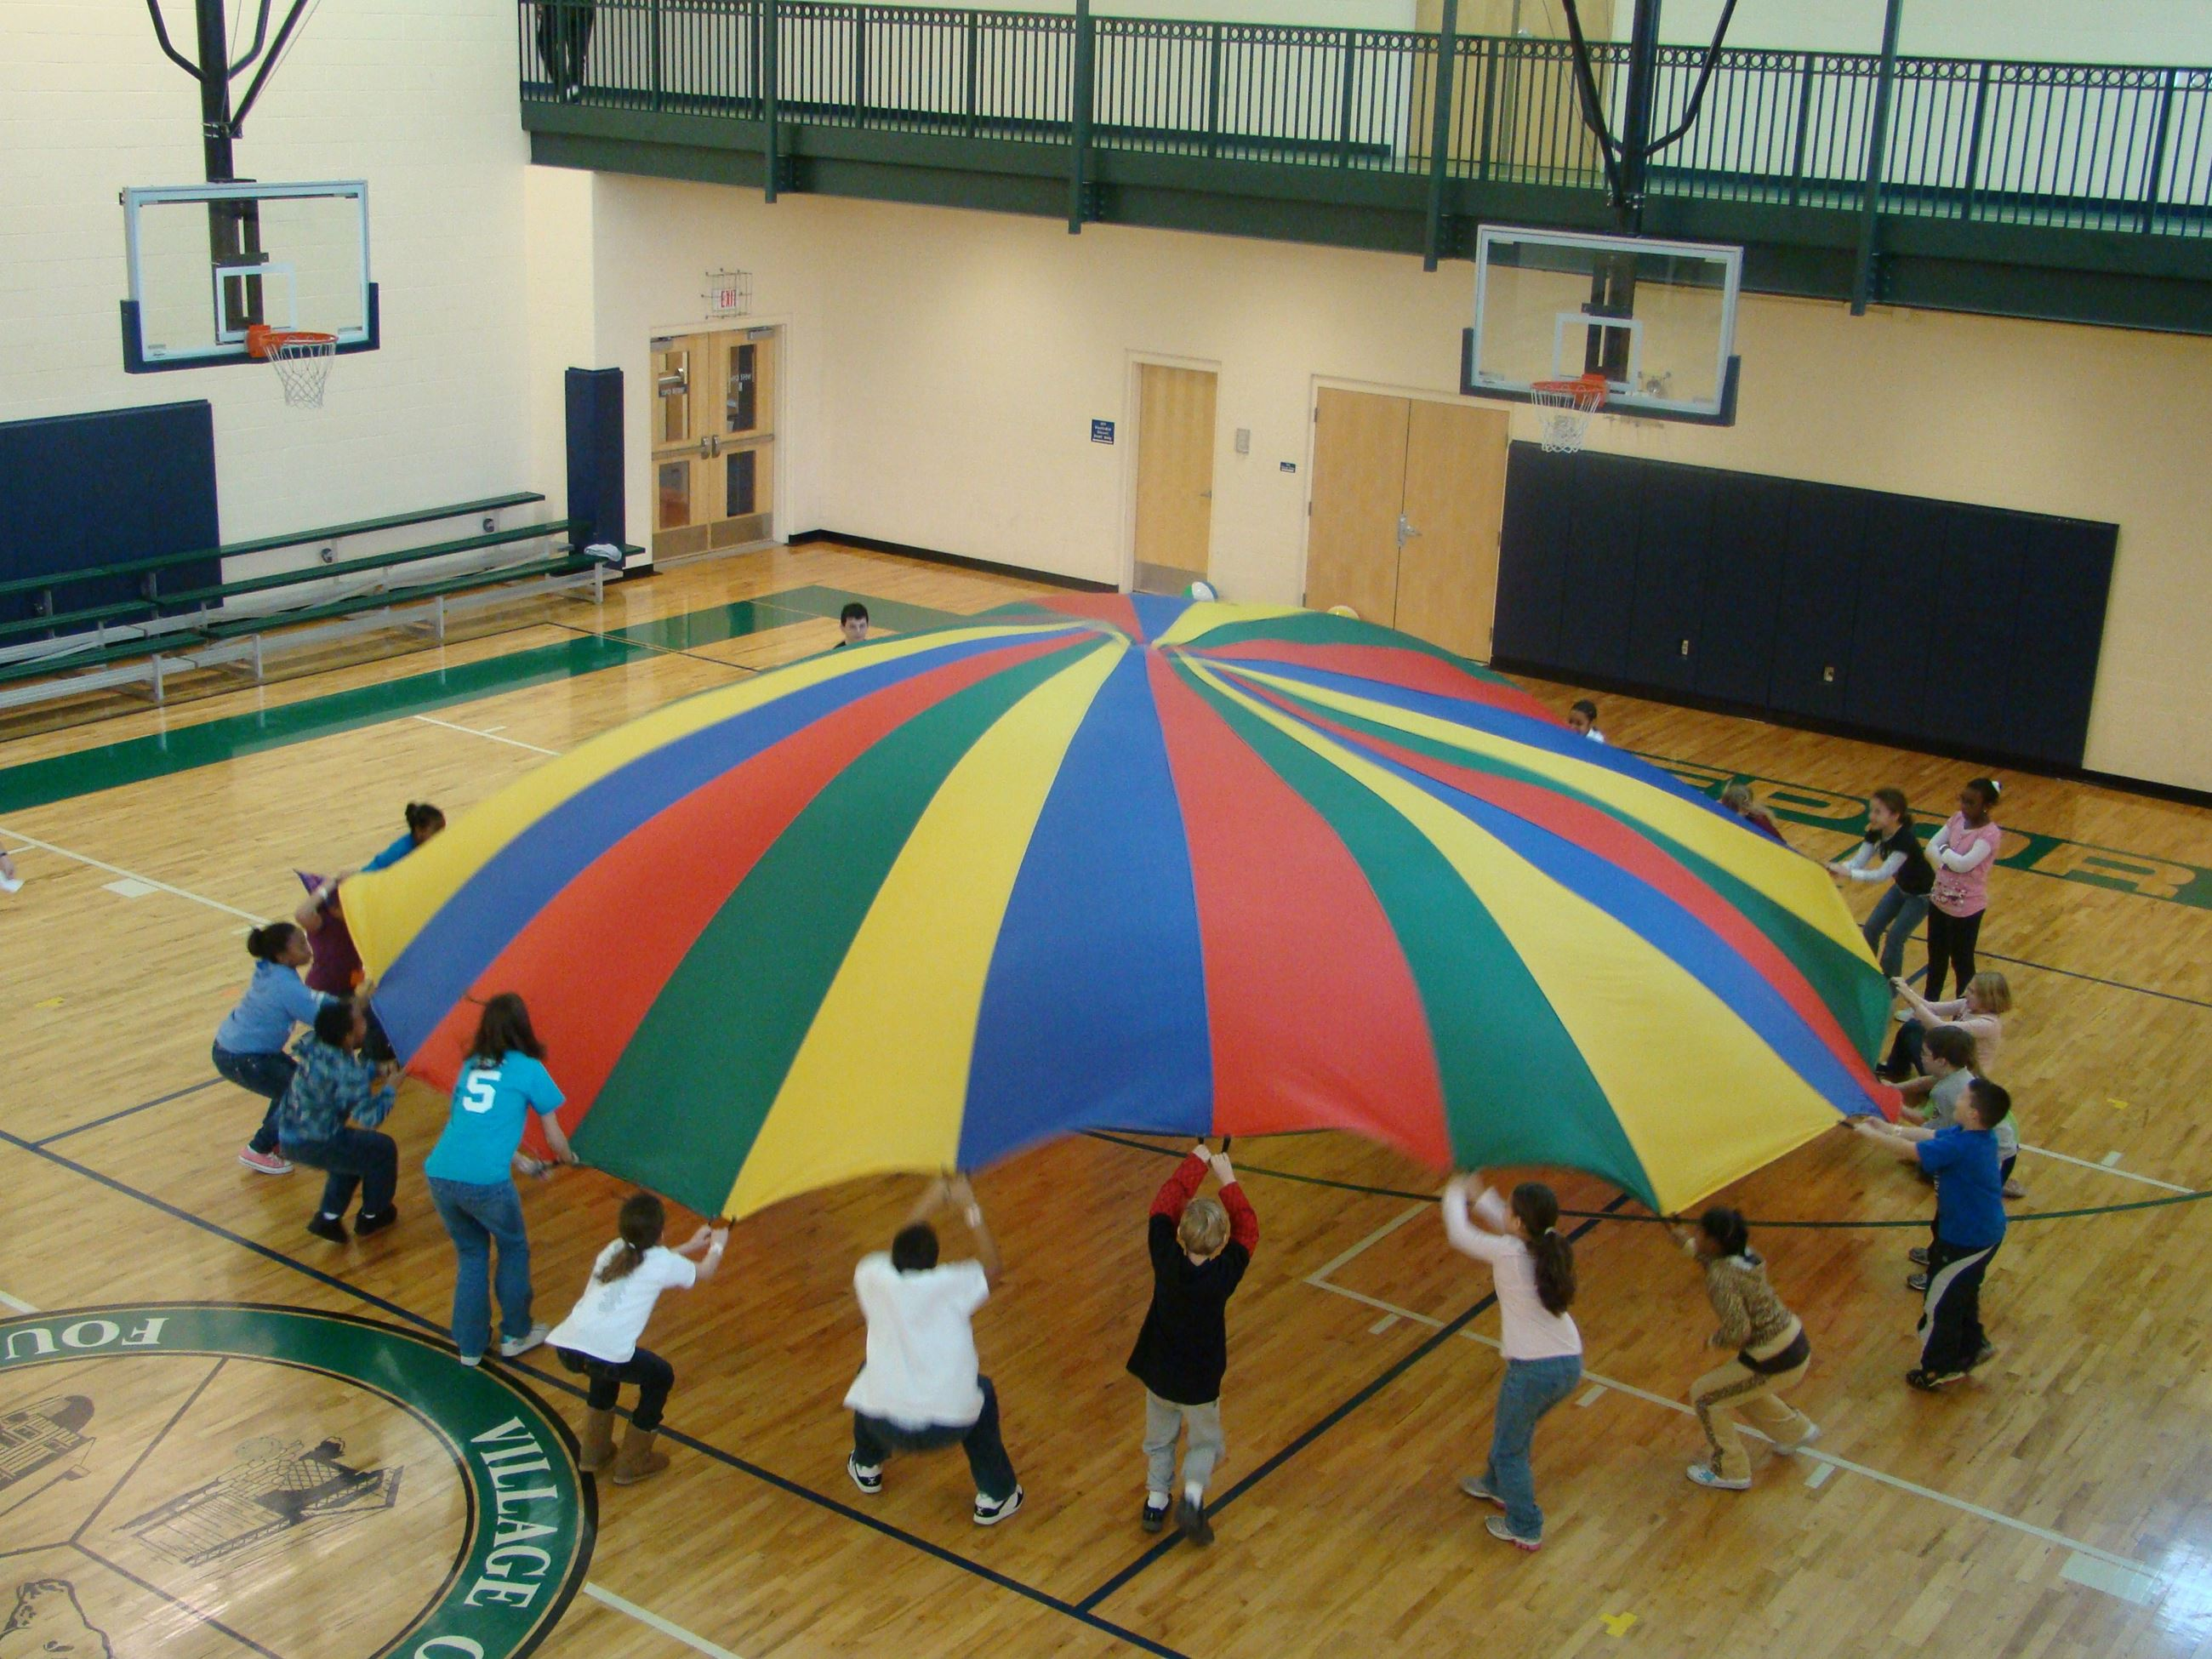 Kids playing with a parachute in the Recreation Center gymnasium.